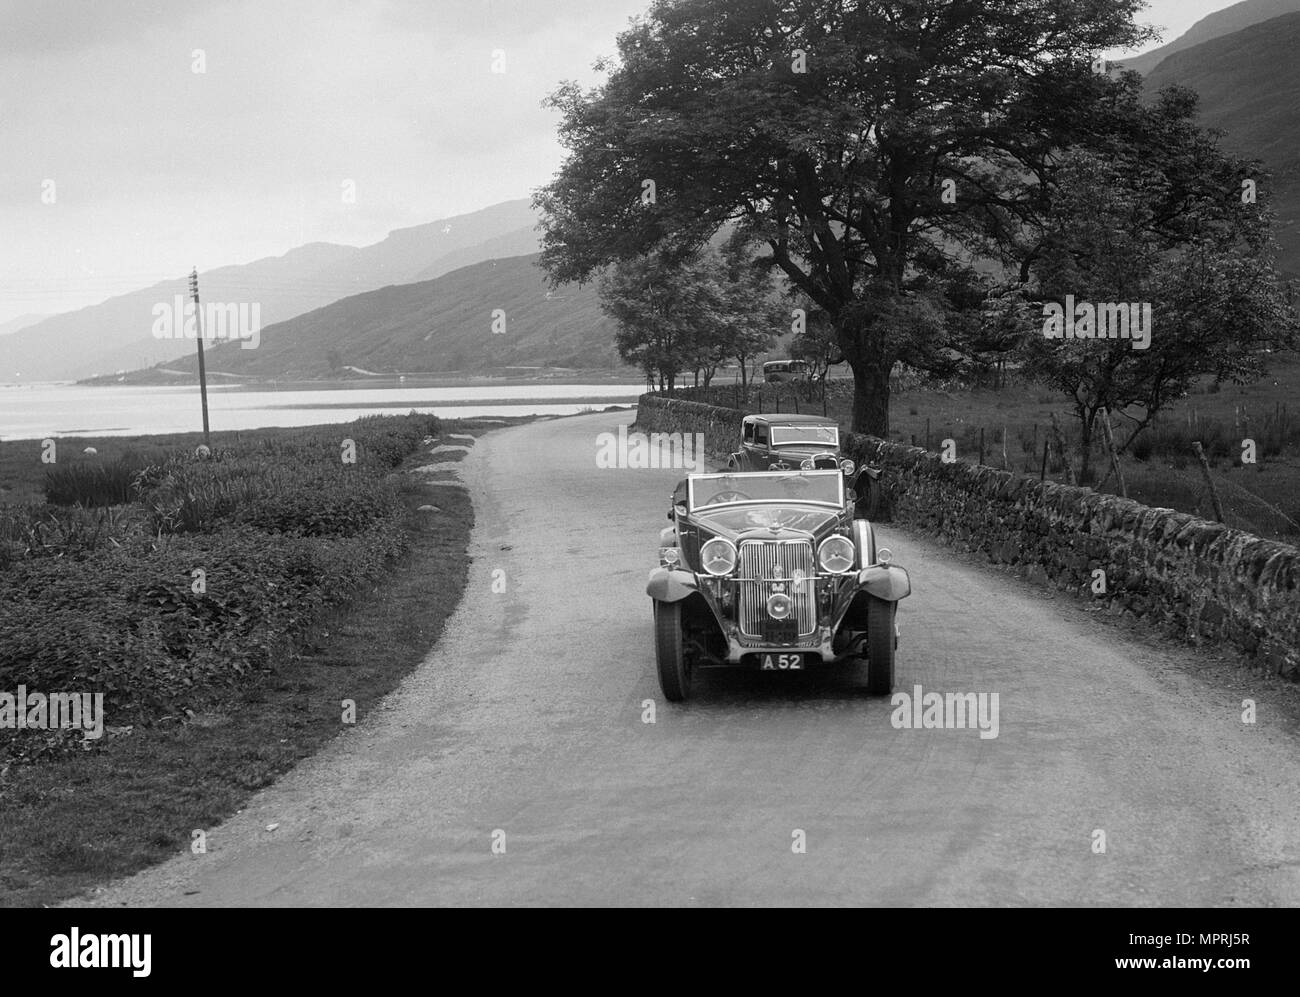 Armstrong-Siddeley of CD Siddeley competing in the RSAC Scottish Rally, 1932. Artist: Bill Brunell. - Stock Image